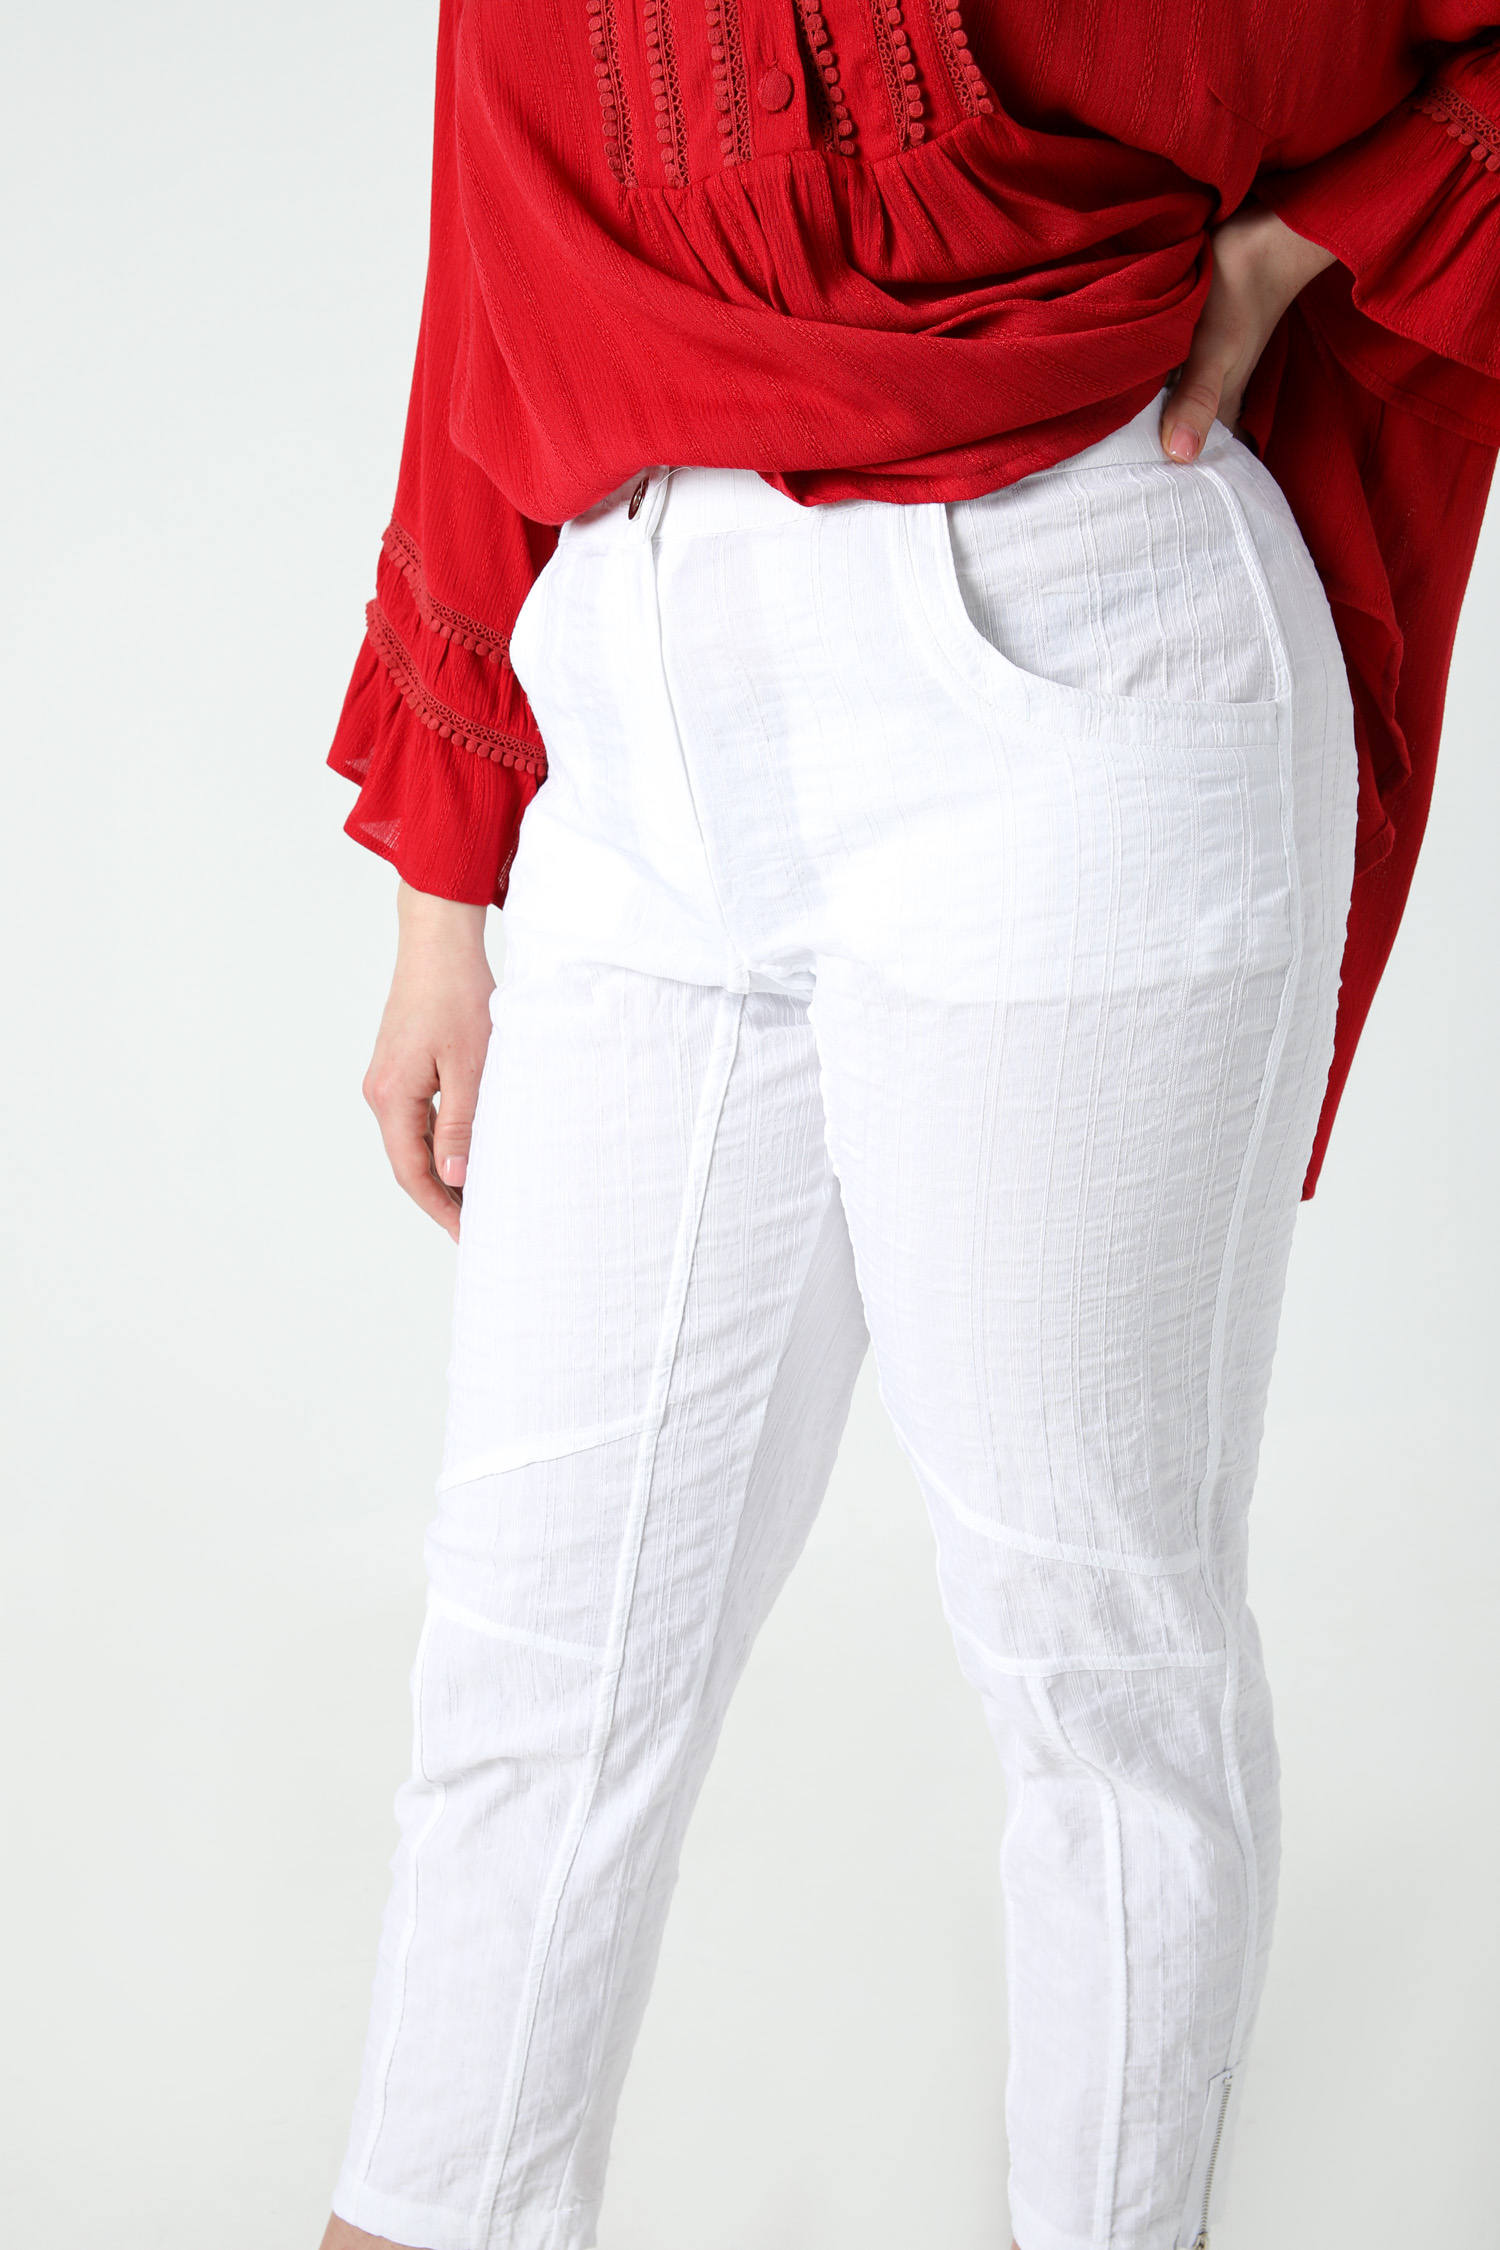 Plain textured pants